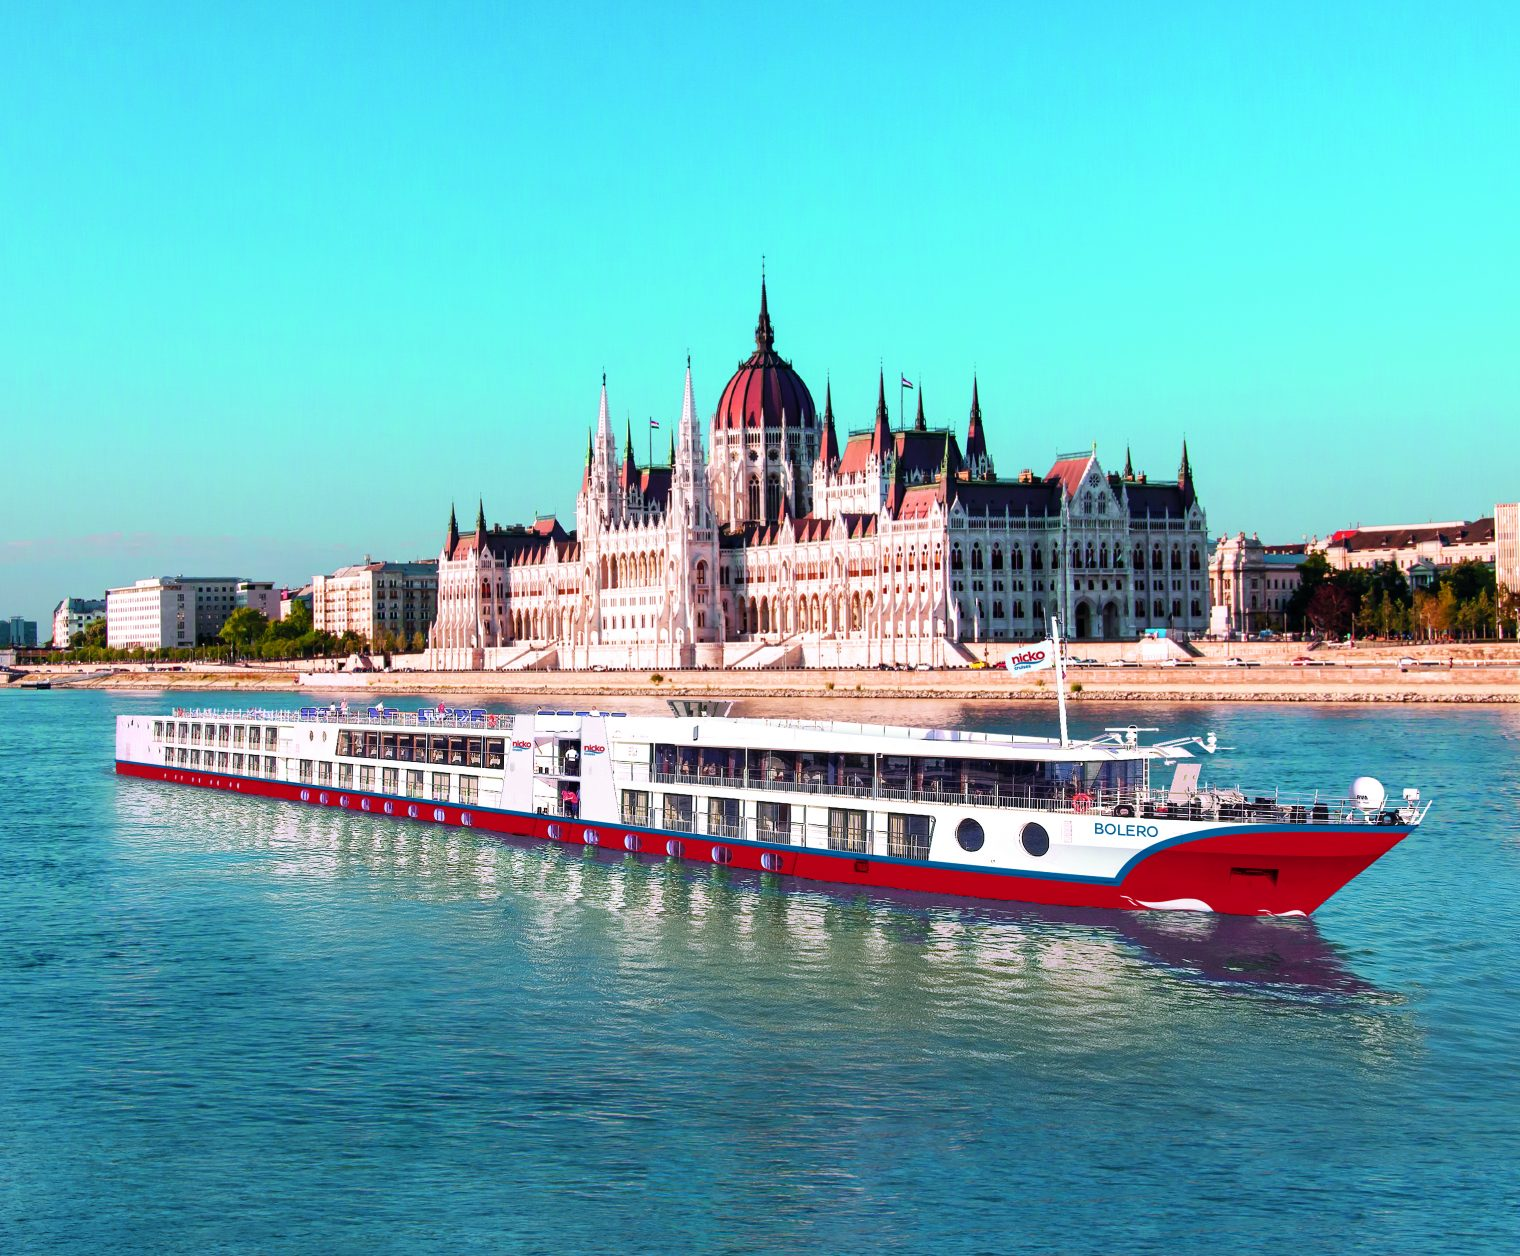 MS Bolero vor dem Parlament in Budapest Foto: nicko cruises